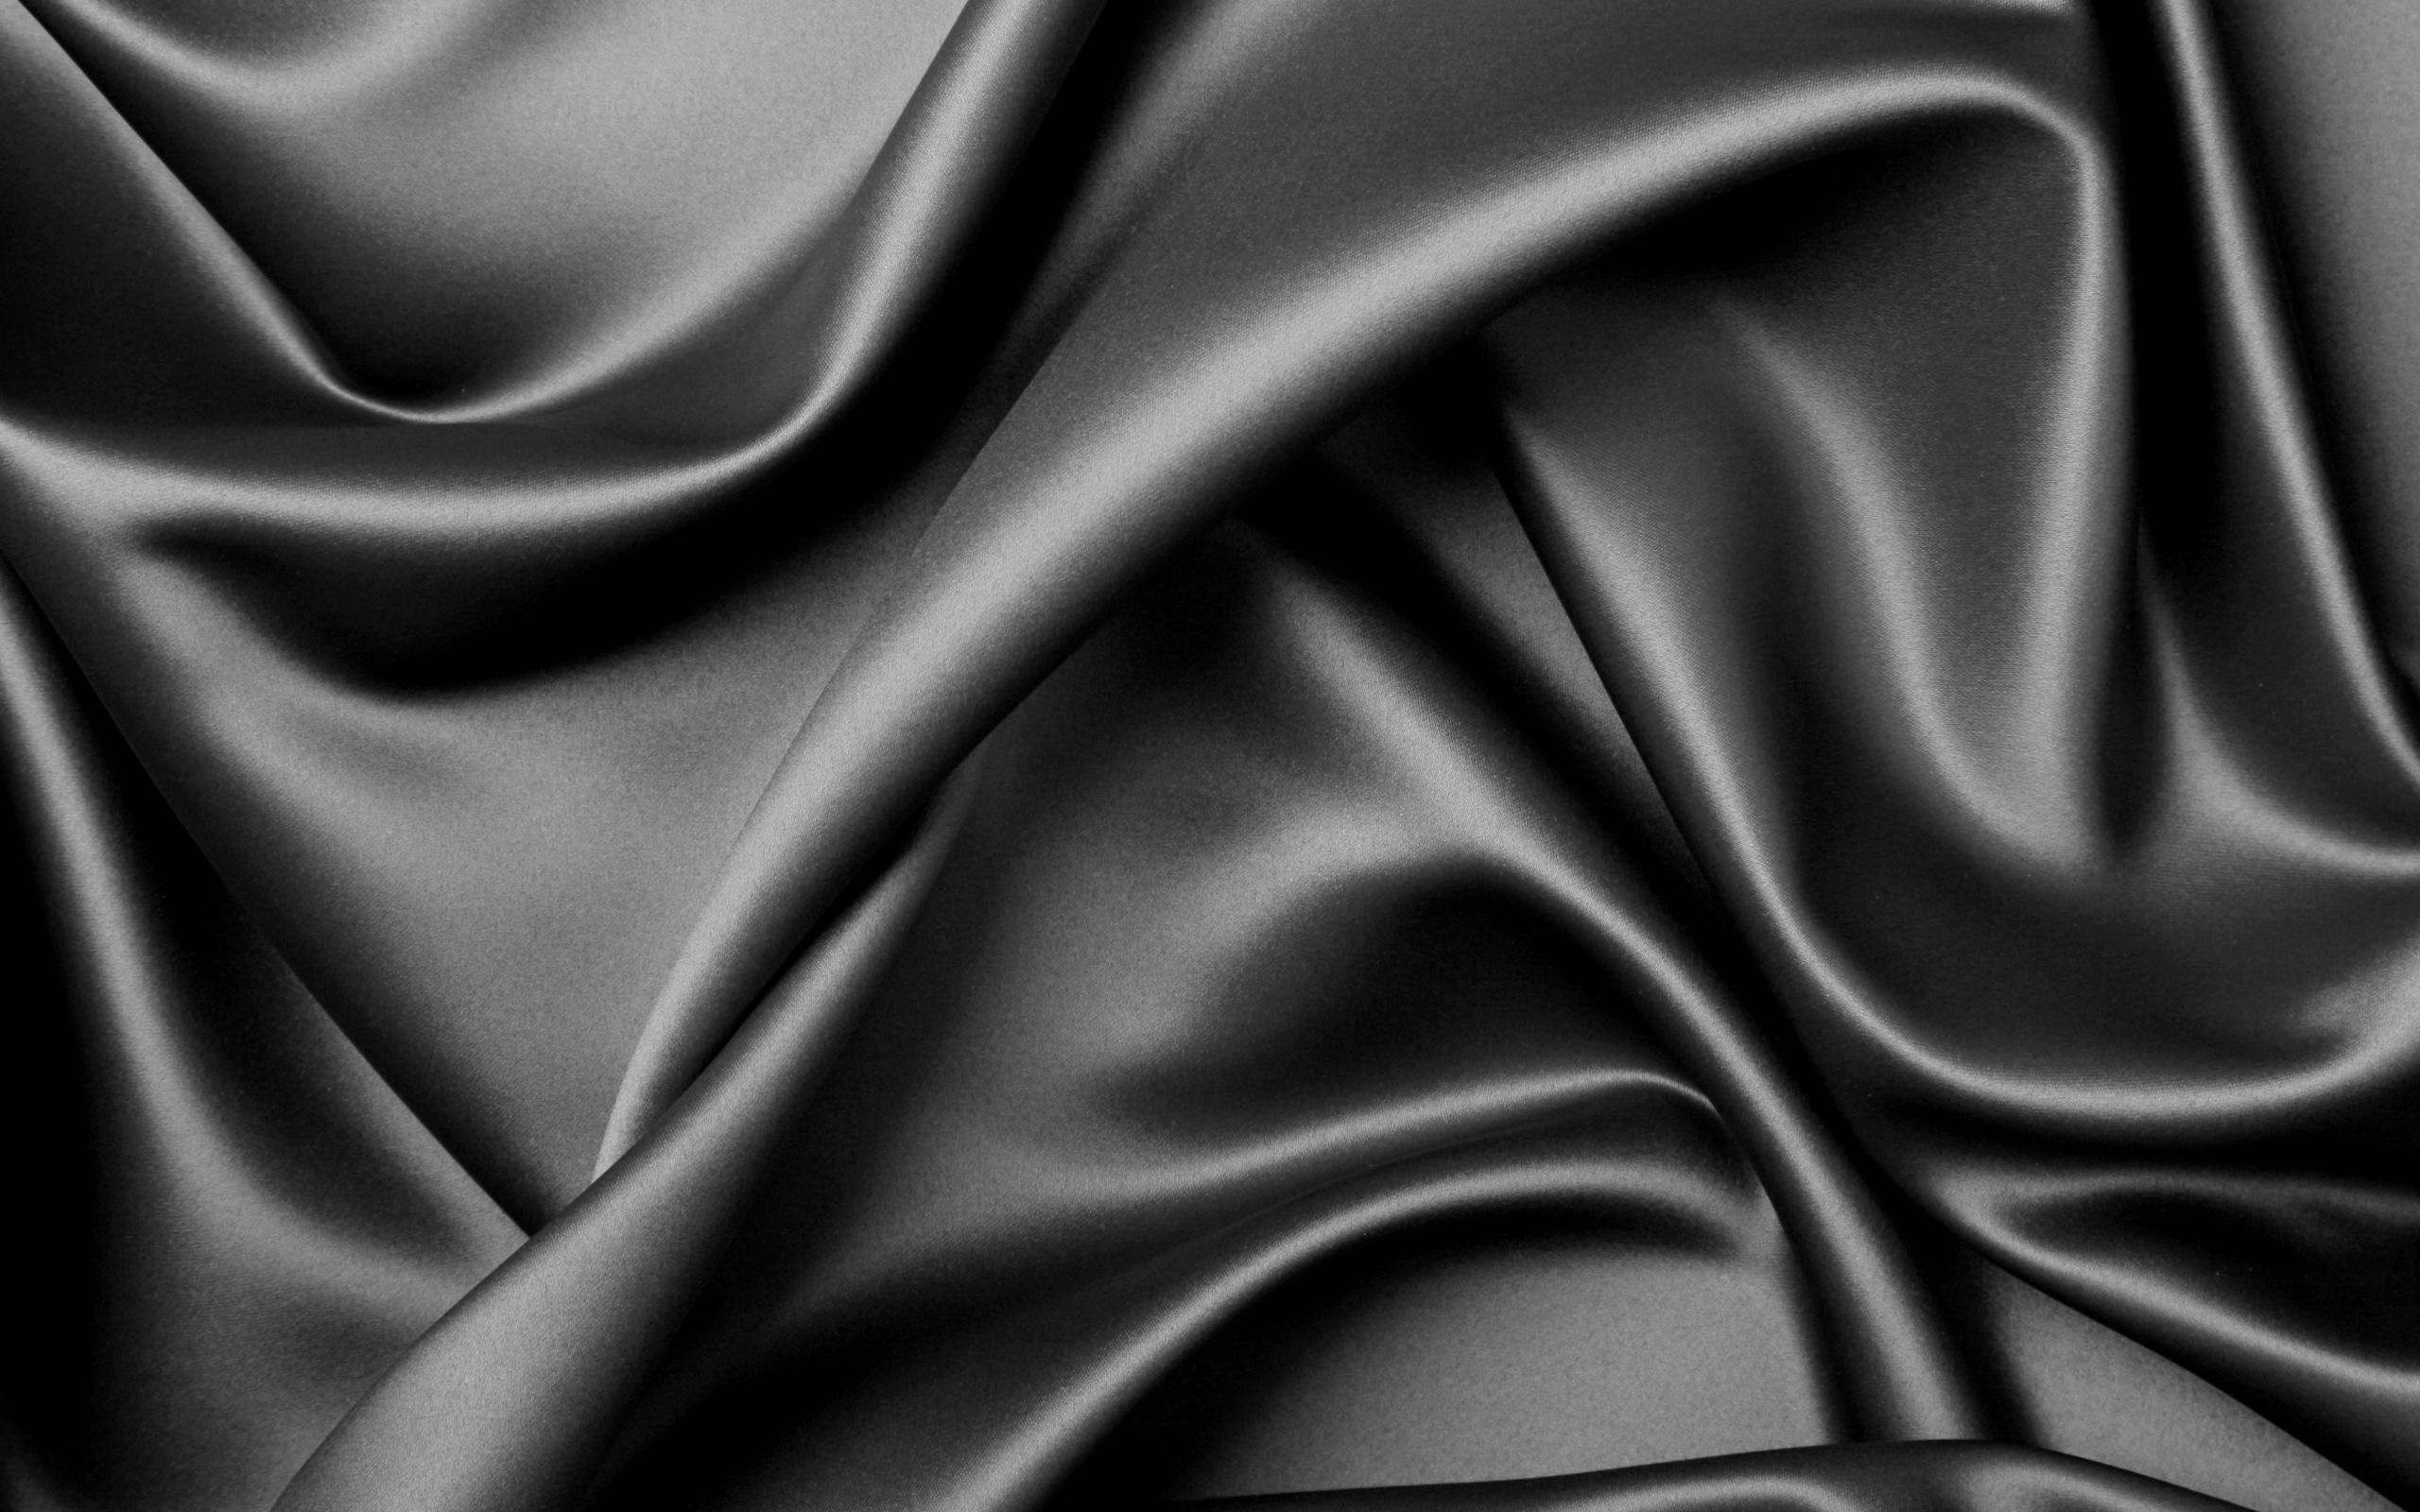 Cool Silk Wallpaper 26464 2498x1440 px